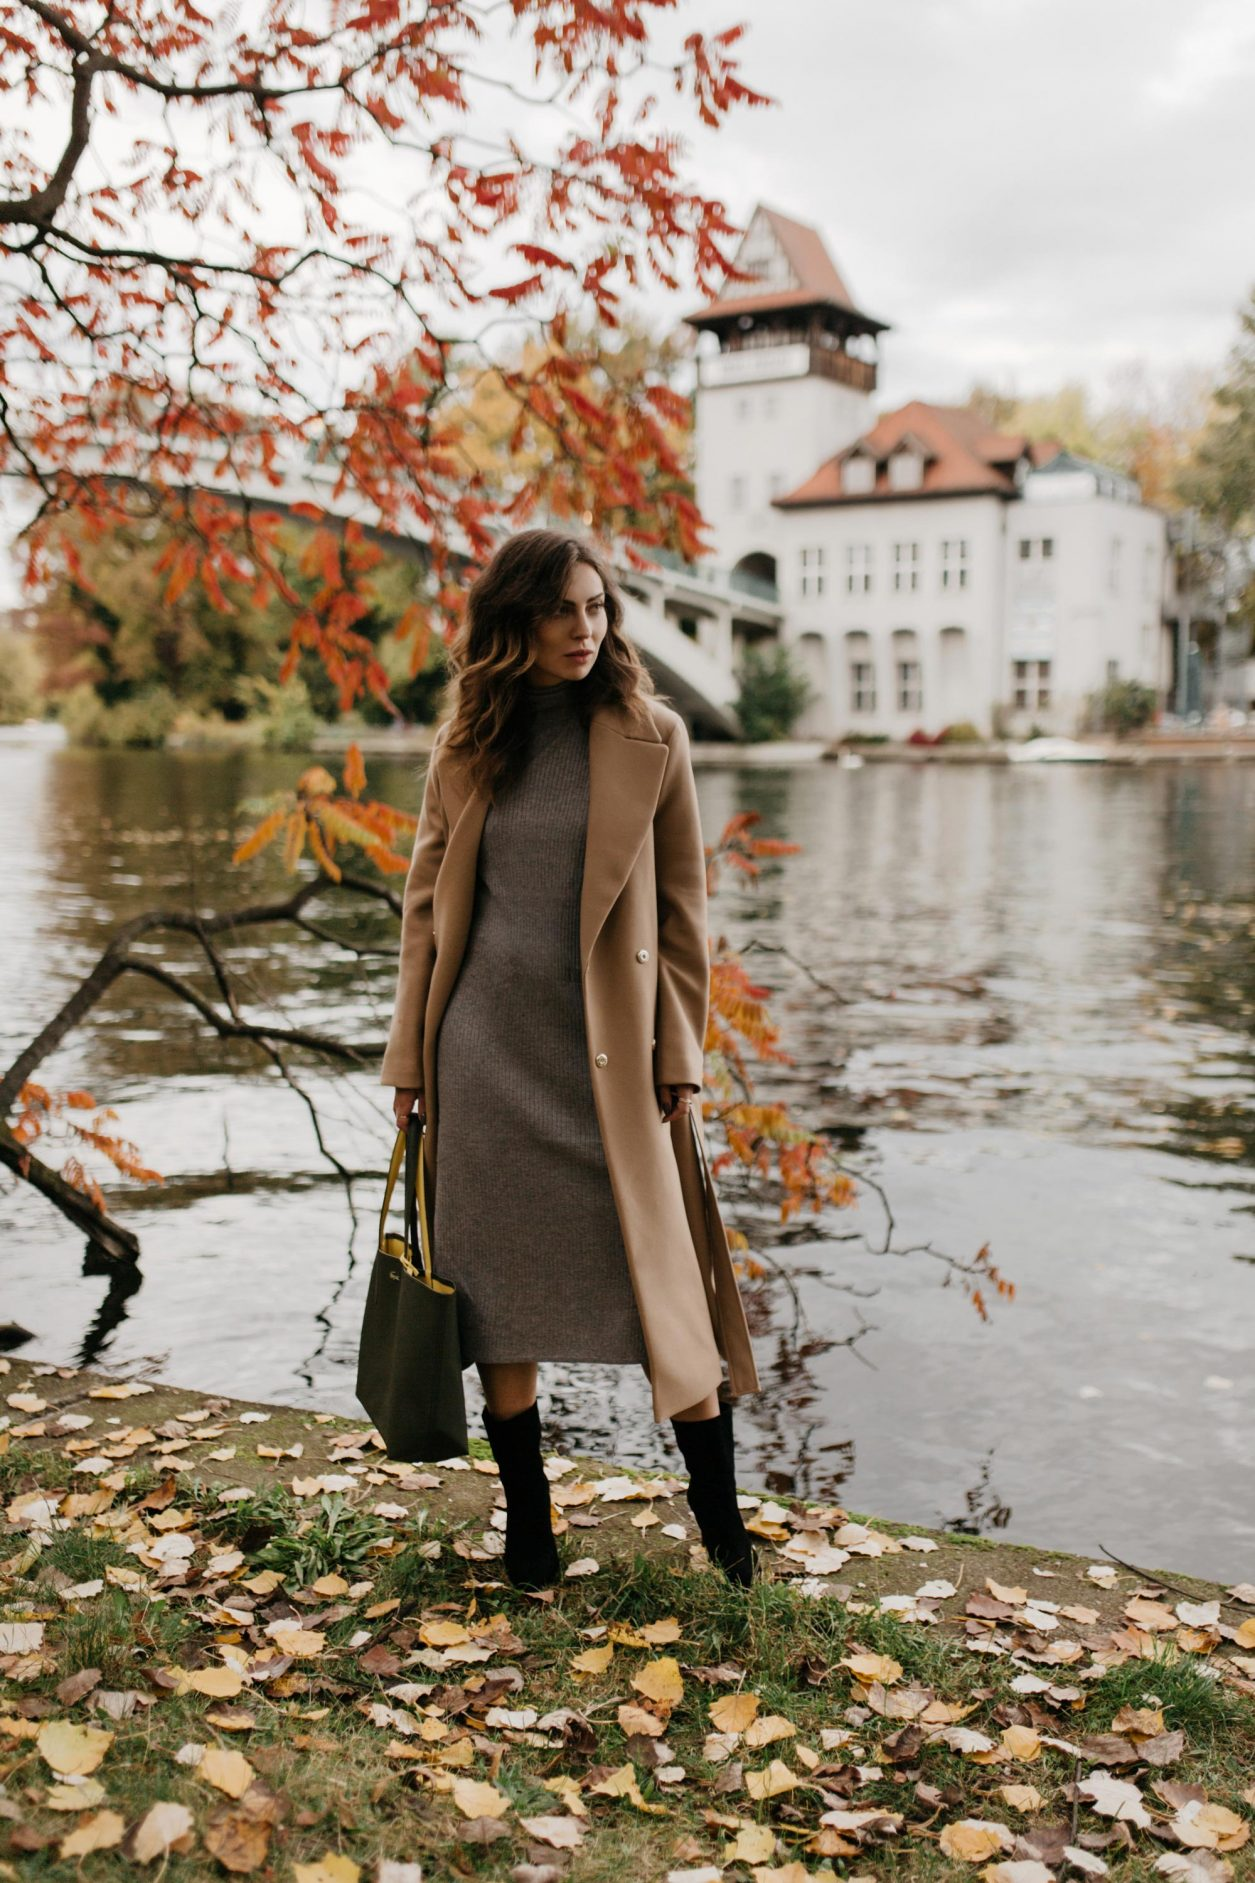 Masha Sedgwick | Berlin fashion and beauty blogger | Fall 2019 outfit inspiration, wearing wool classy camel coat by Tommy Hilfiger, grey turtleneck knit dress: Banana Republic, khaki green leather shopper: Lacoste, classy suede leather heeled boots: Billi Bi Copenhagen, Shooting spot: Berlin Treptower Park